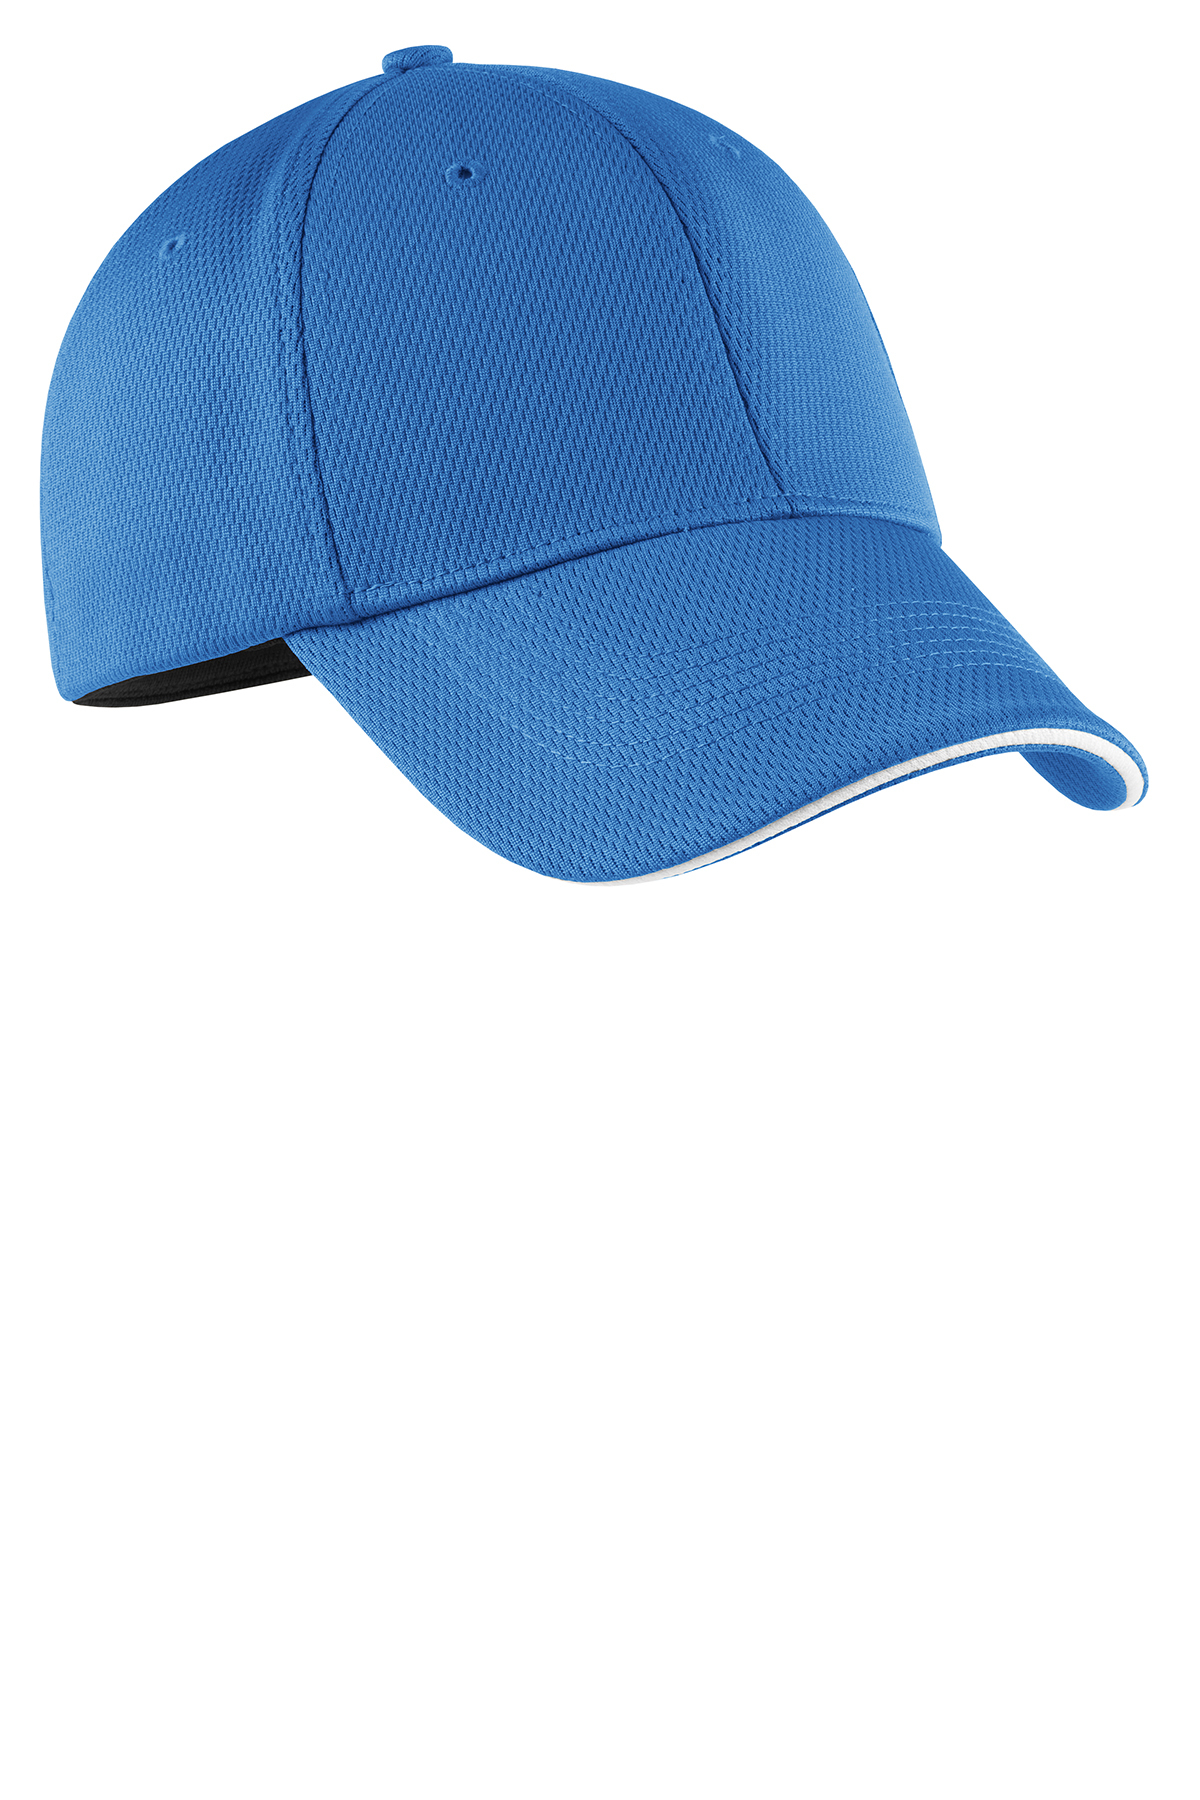 f0e82aeec0bd05 Nike Dri-FIT Mesh Swoosh Flex Sandwich Cap | Performance/Team ...